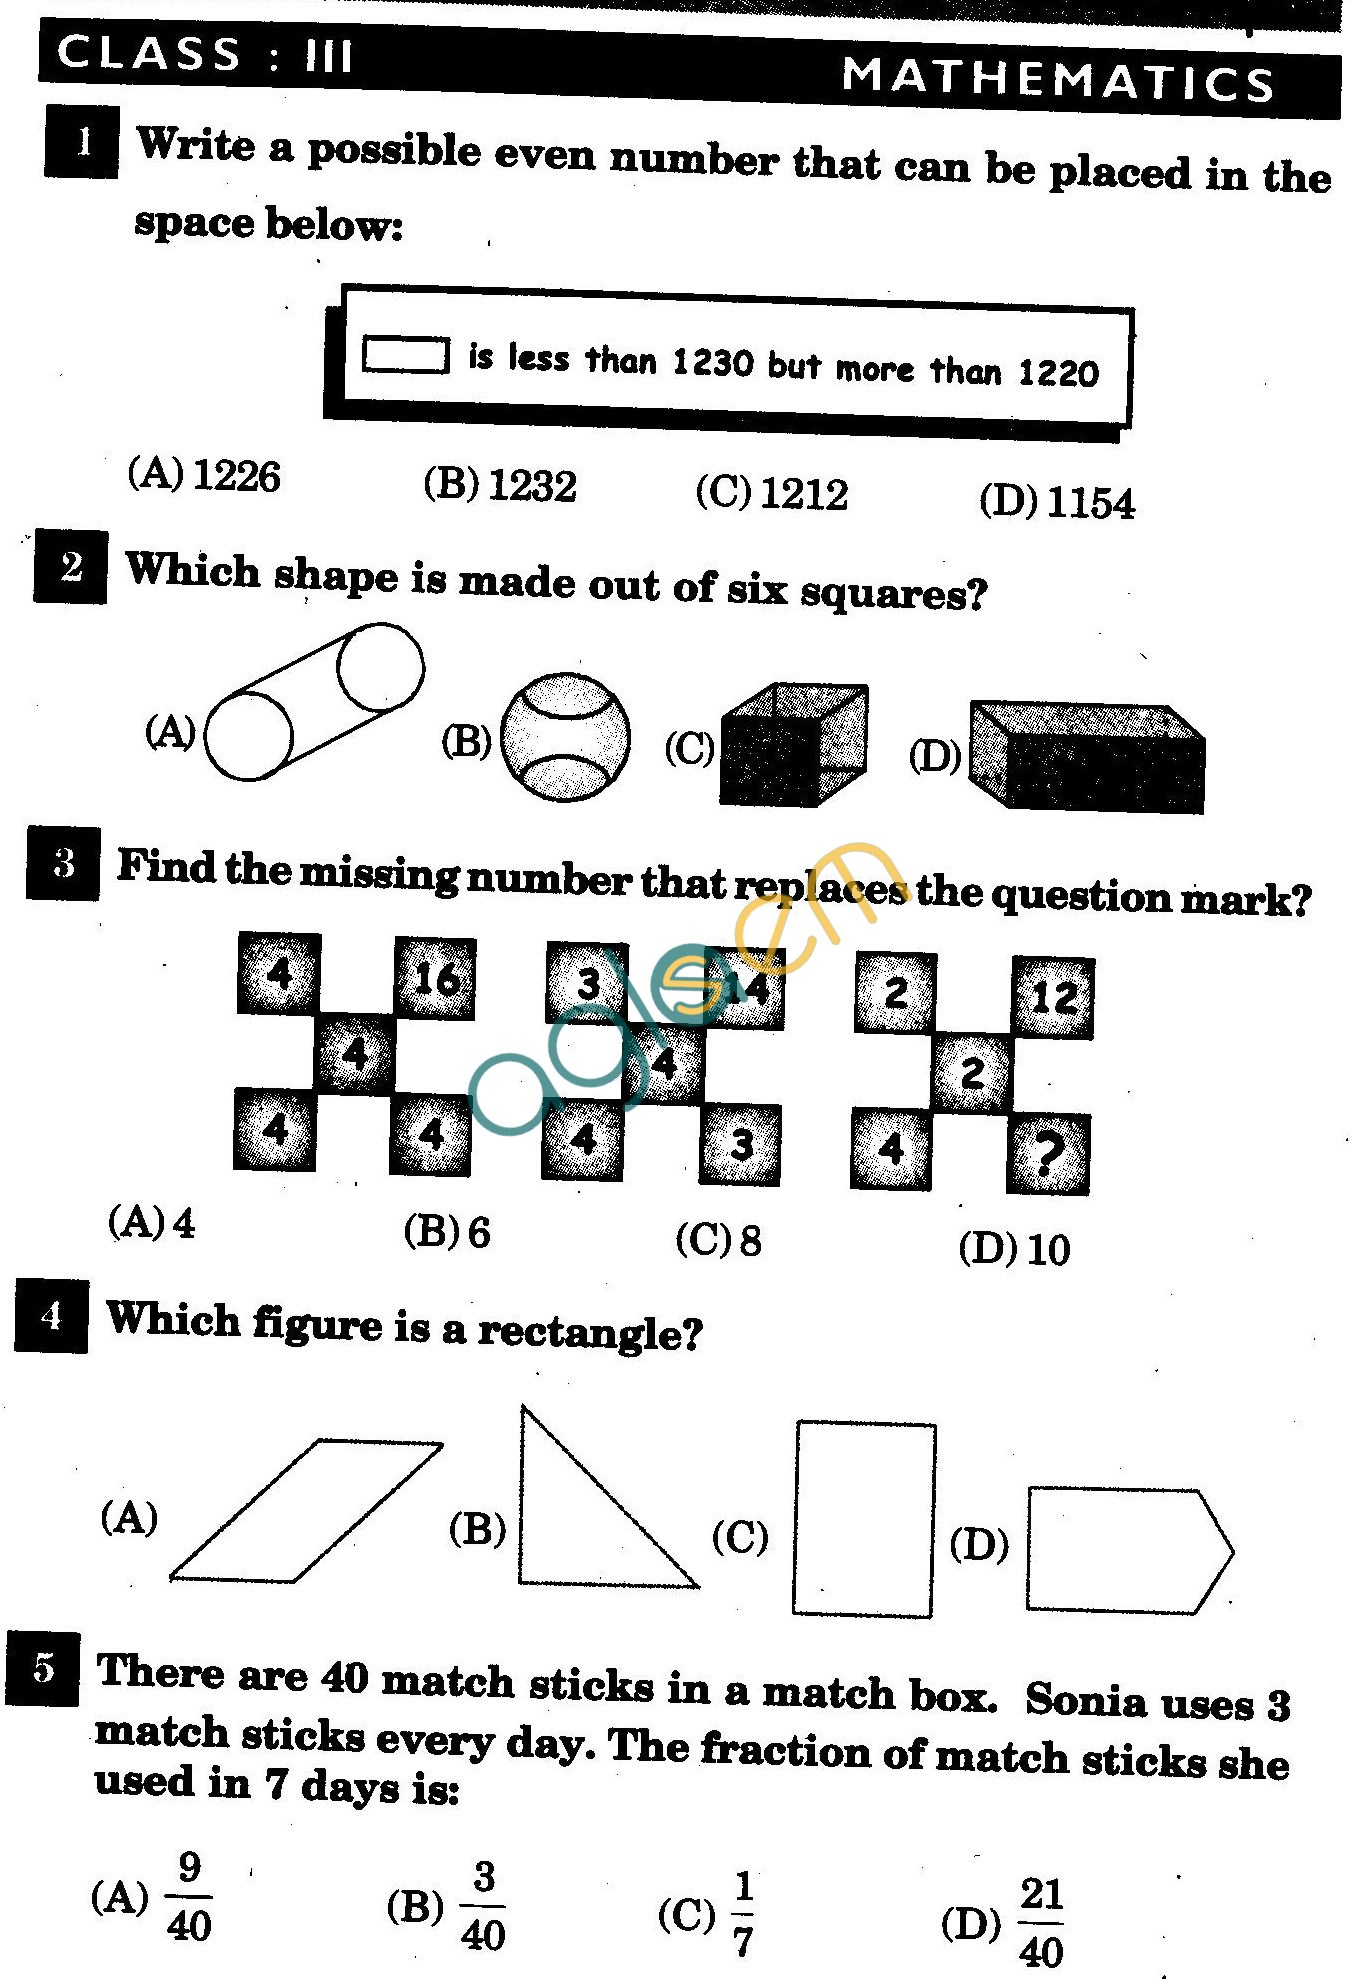 NSTSE 2011 Solved Question Paper for Class III